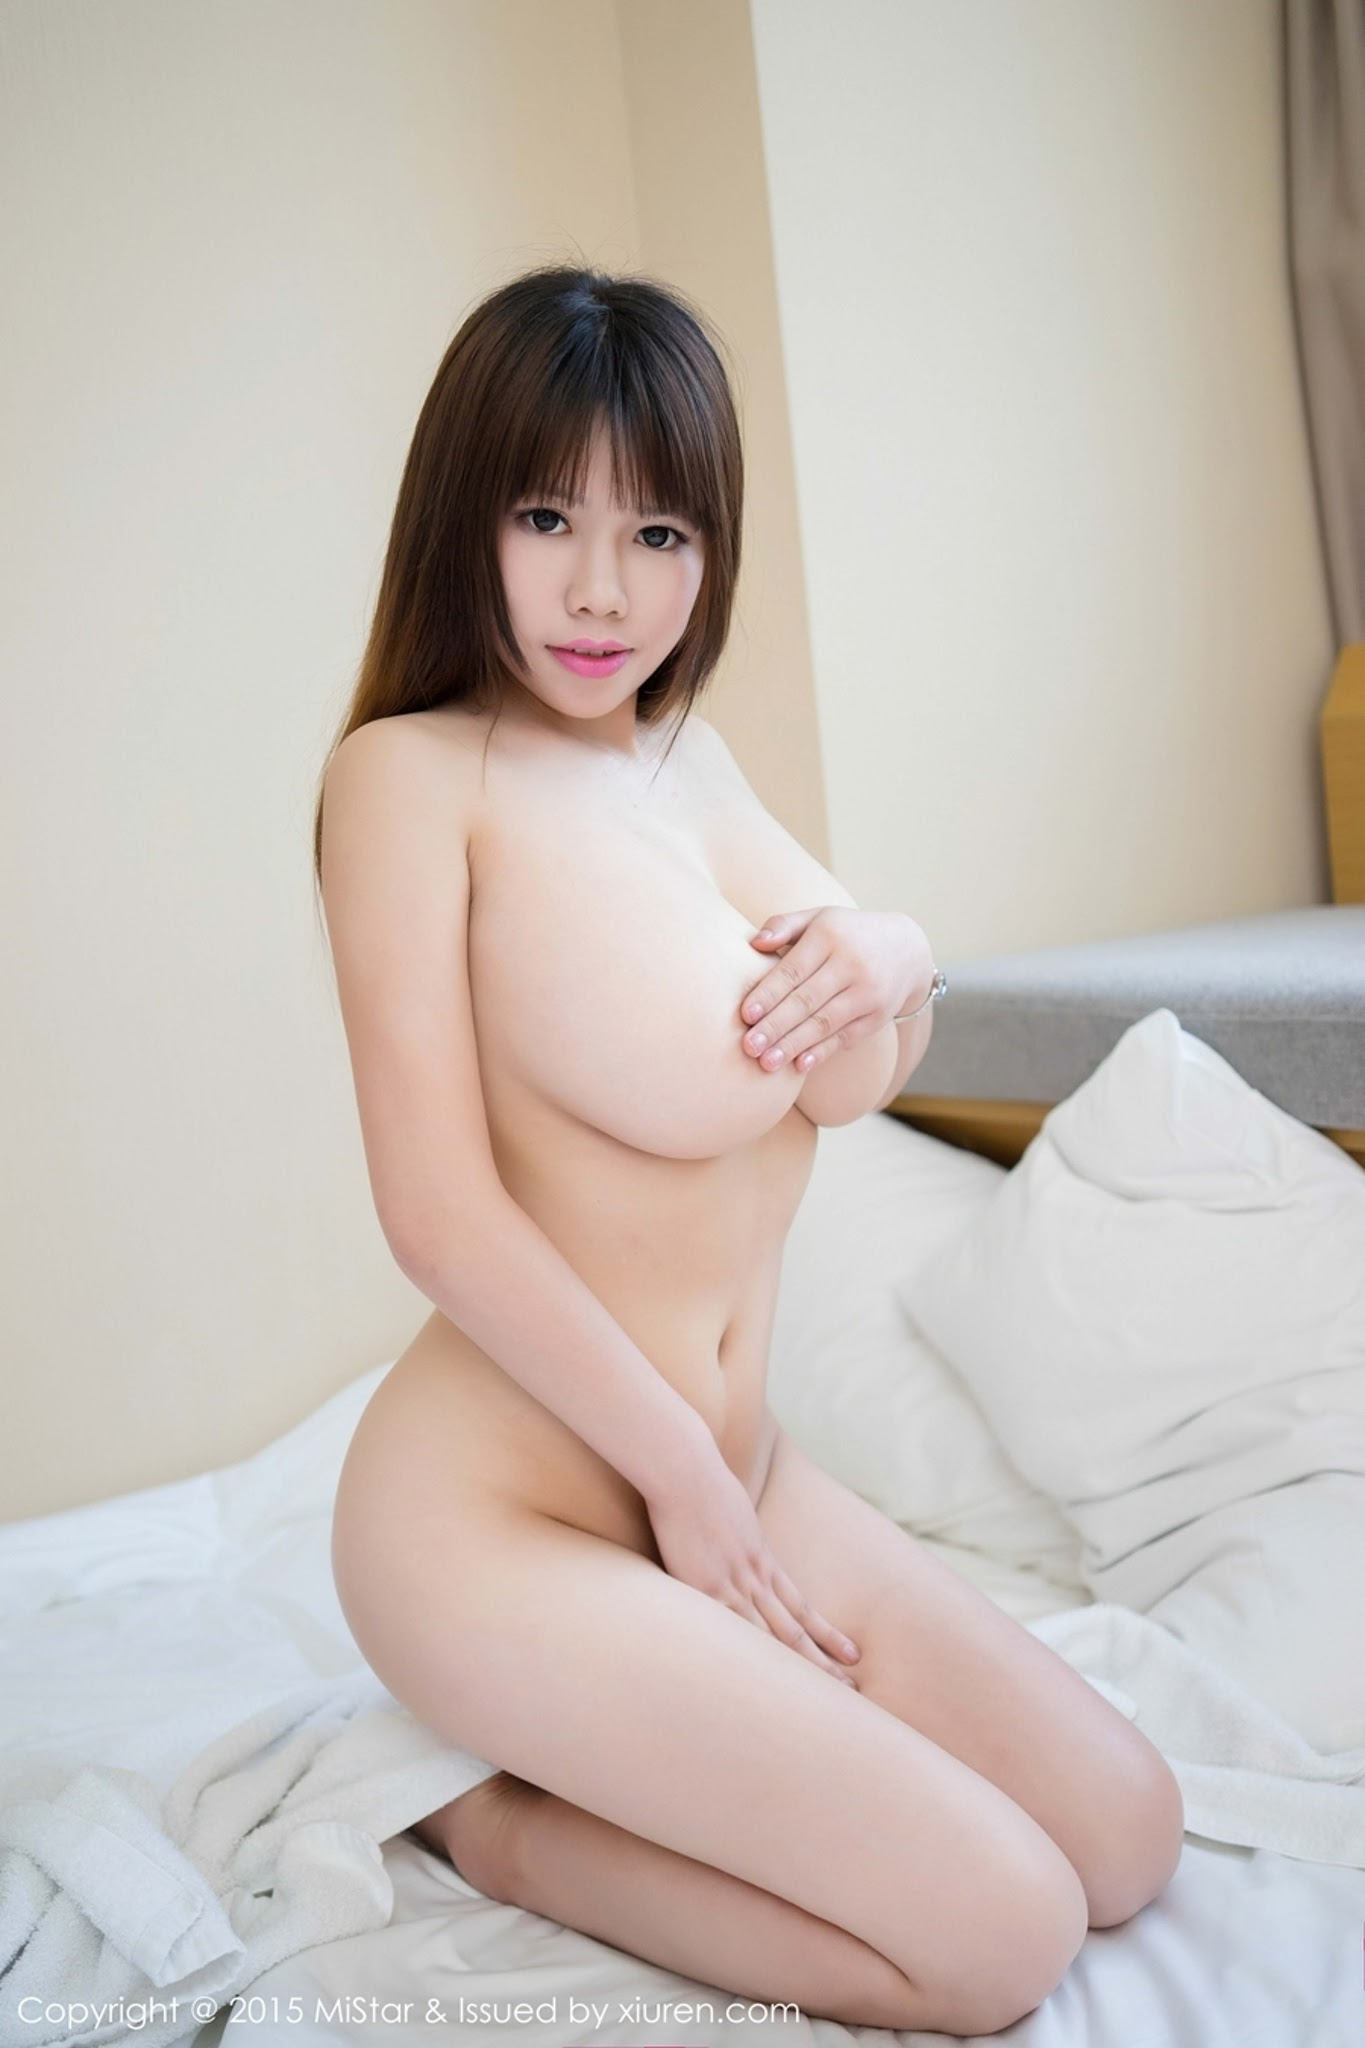 Trista Mistar Nude Young Chinese Girl With -3447